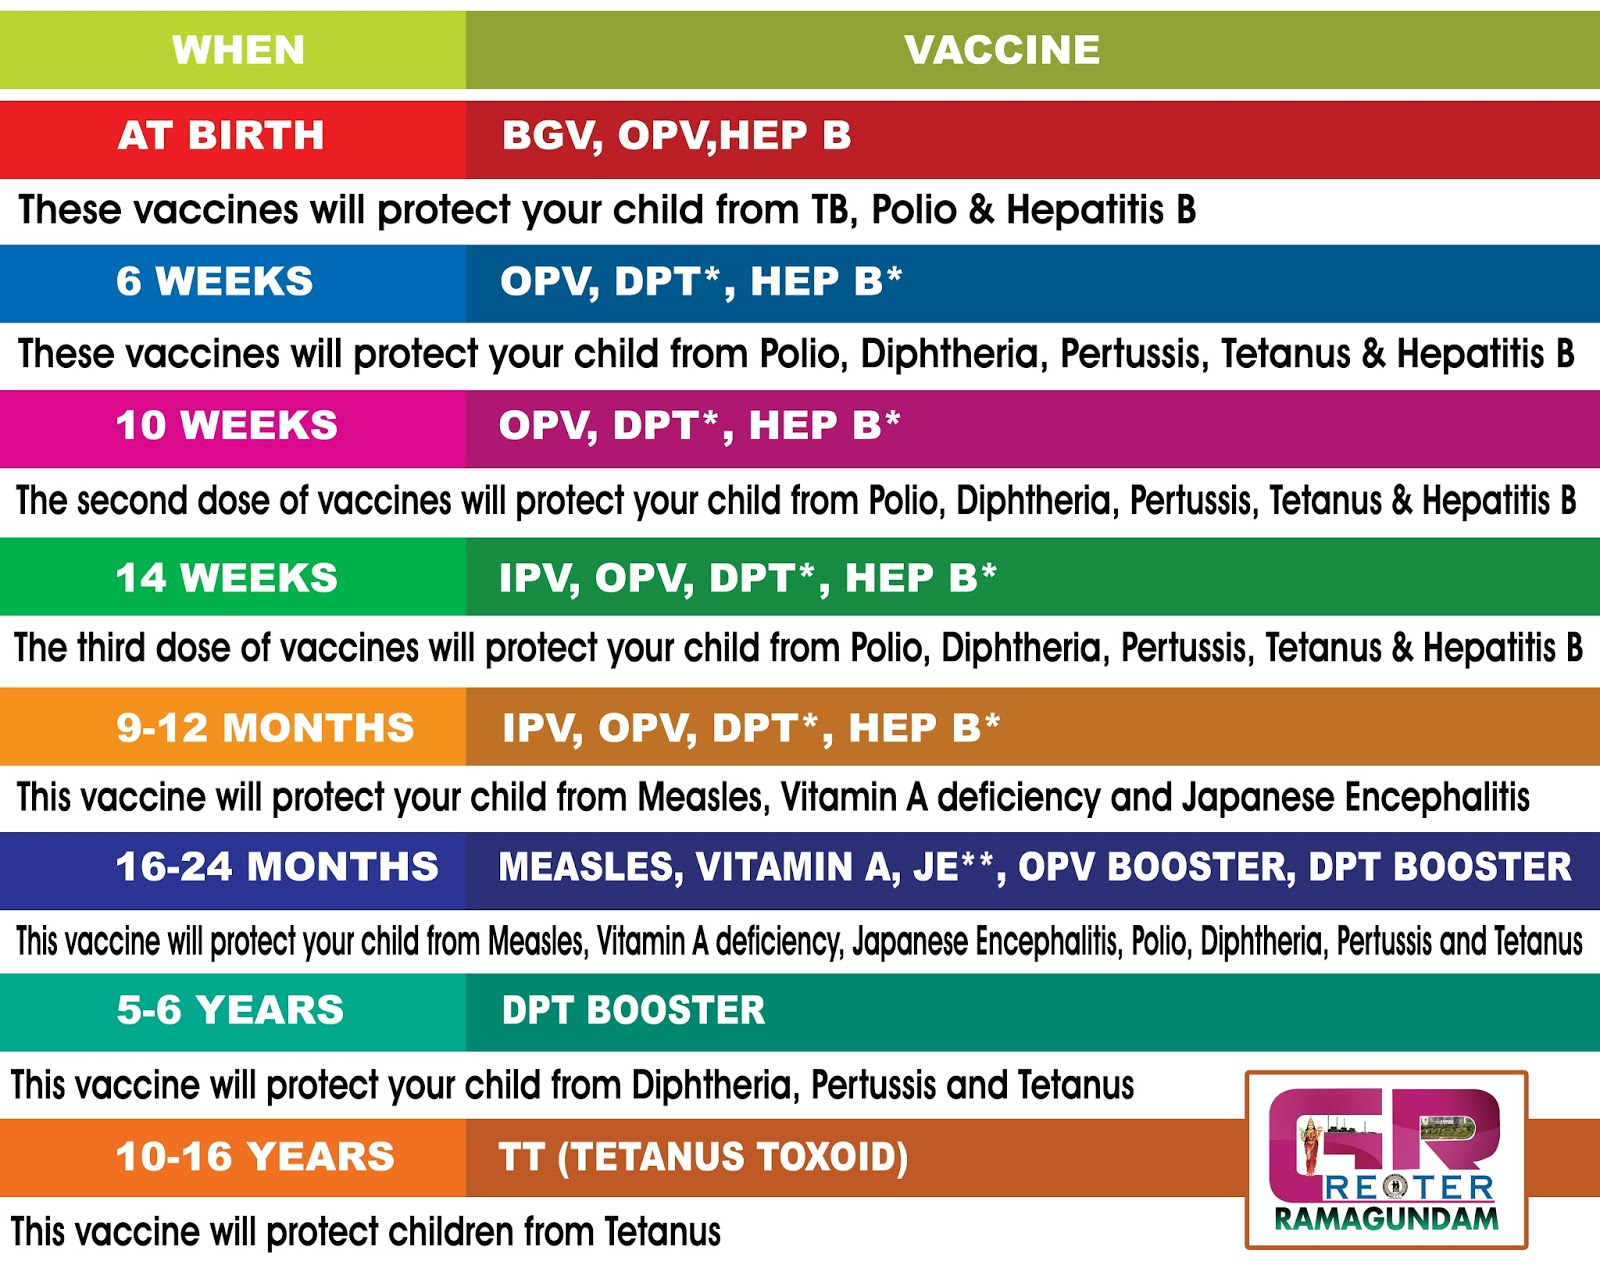 Mission Indradhanush Vaccination Schedule and brief ...